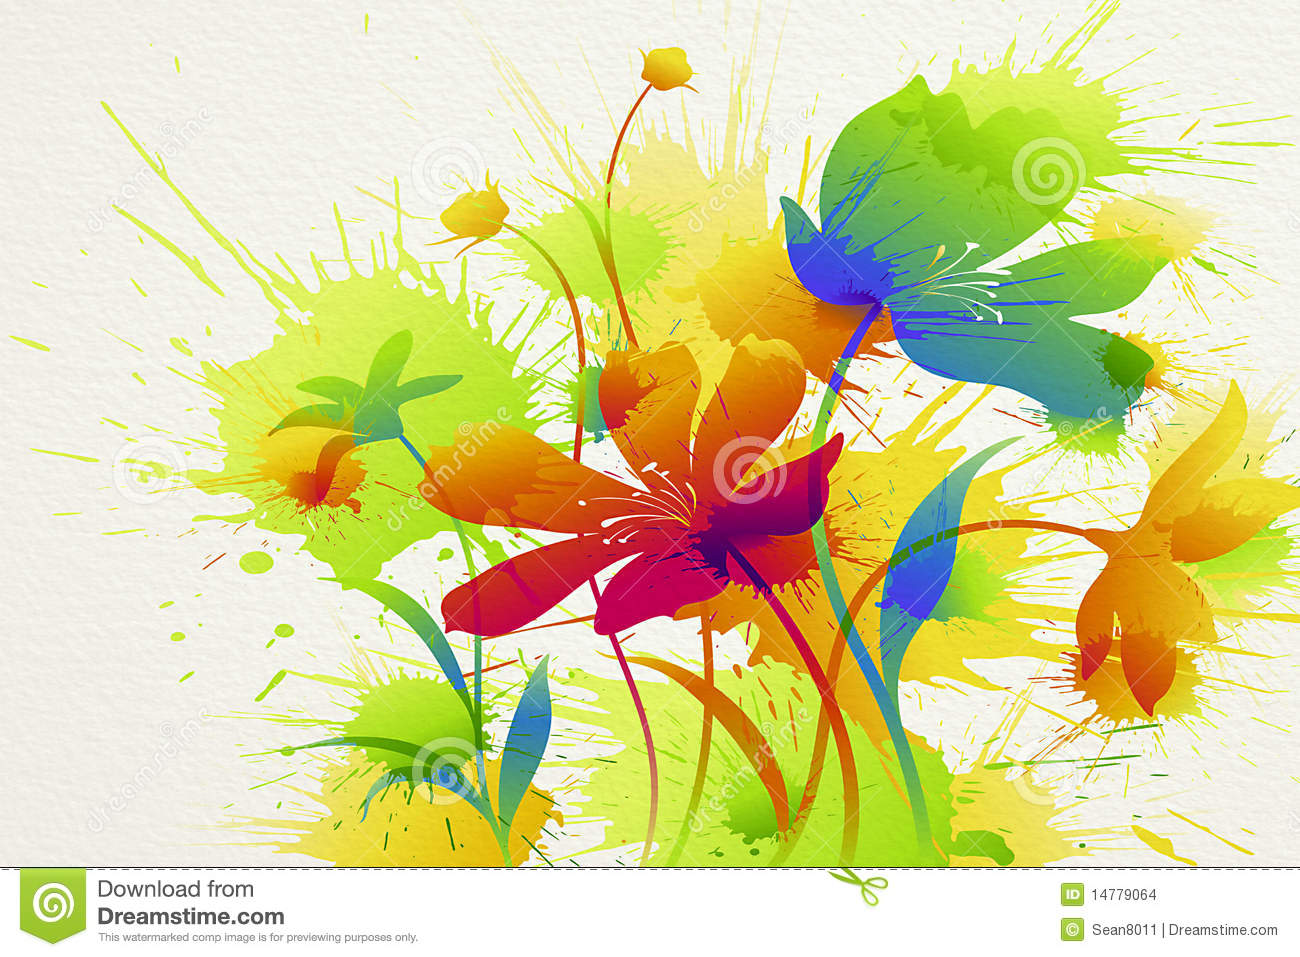 Flower Painting Stock Images - Image: 14779064